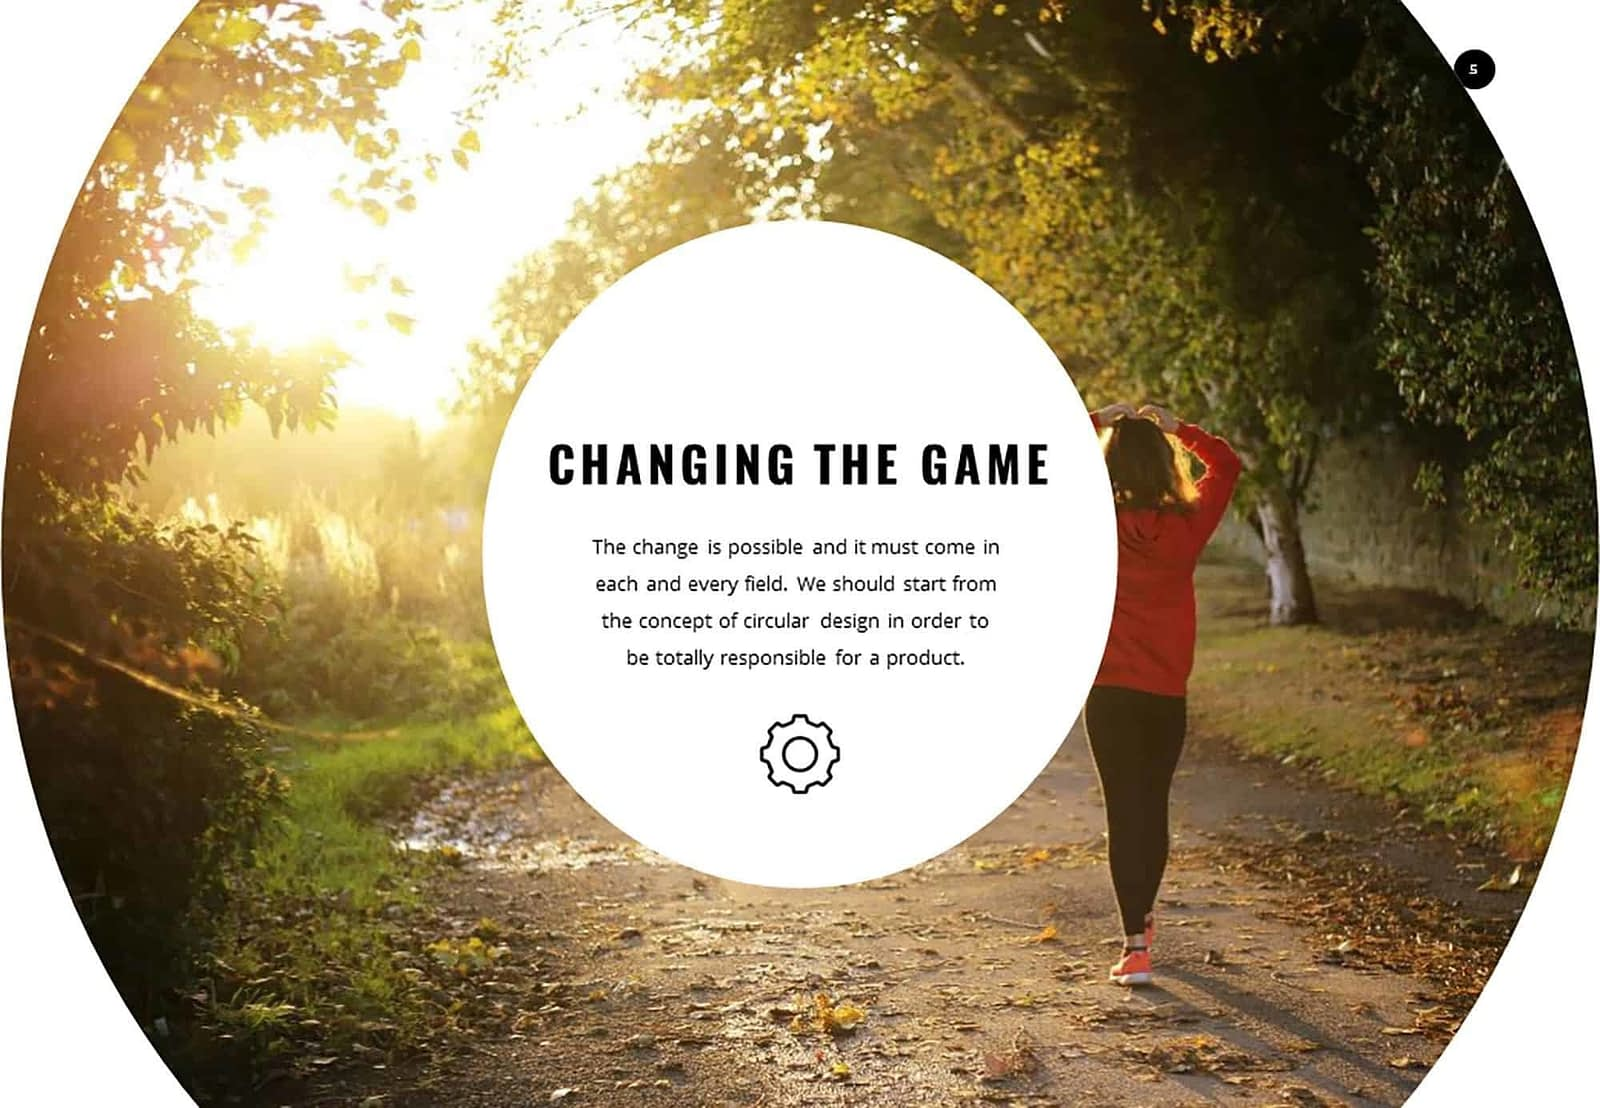 Nike Grind by Toud, PowerPoint Presentation, design presentation, presentation design, how to build a presentation